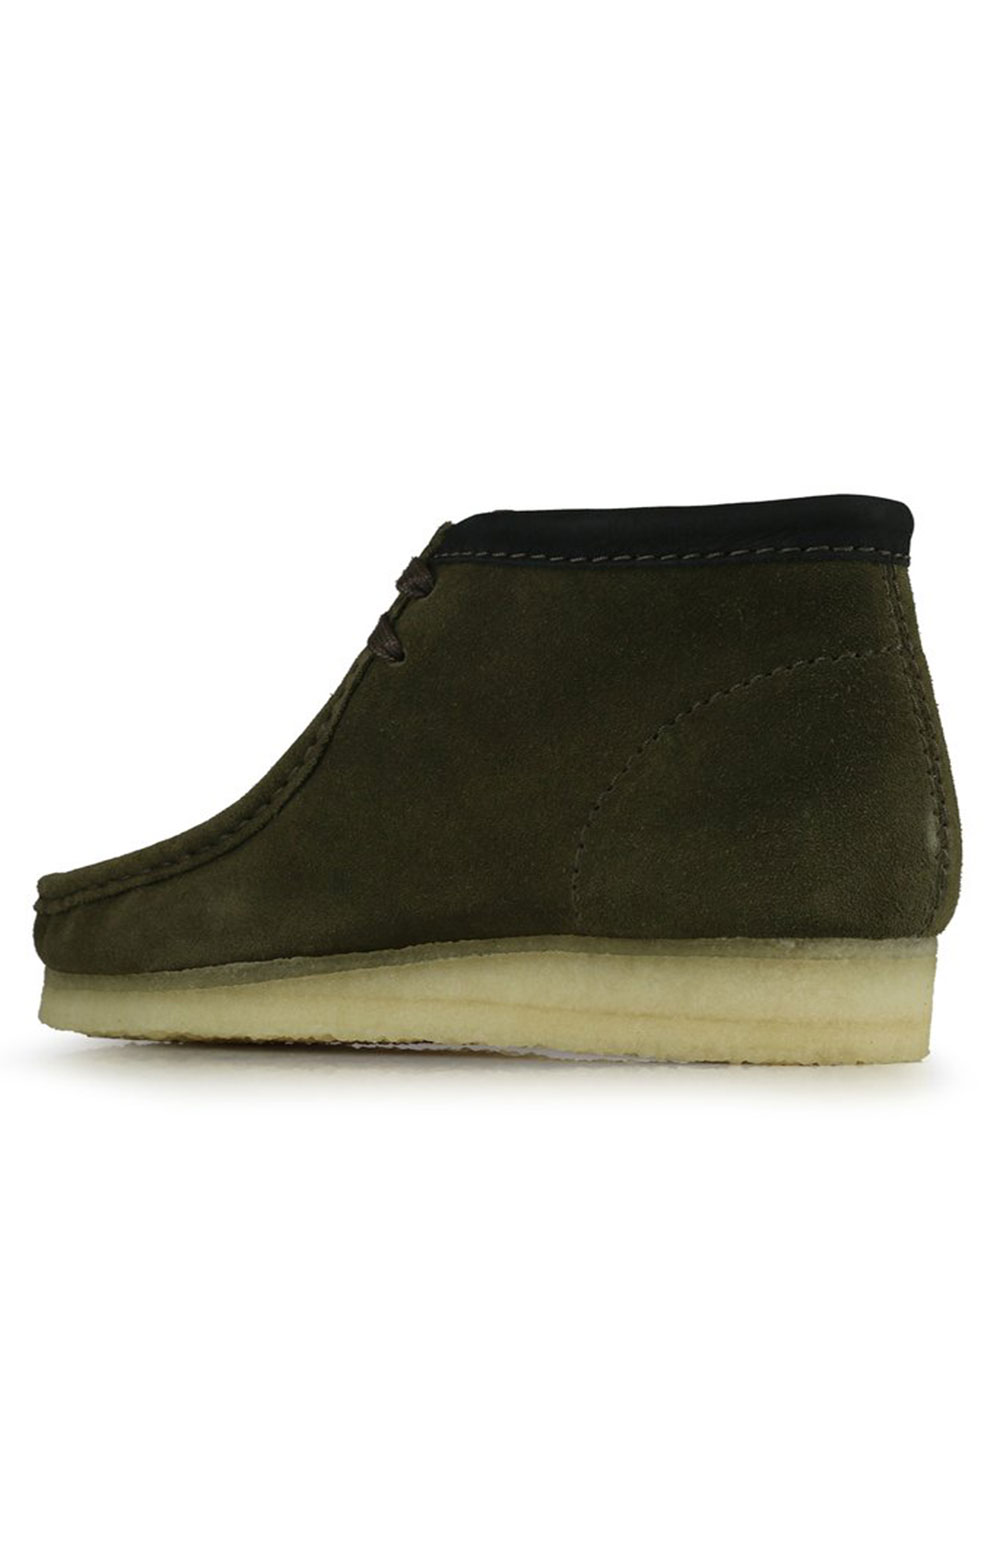 (26154740) Wallabee Boots - Olive Interest  3